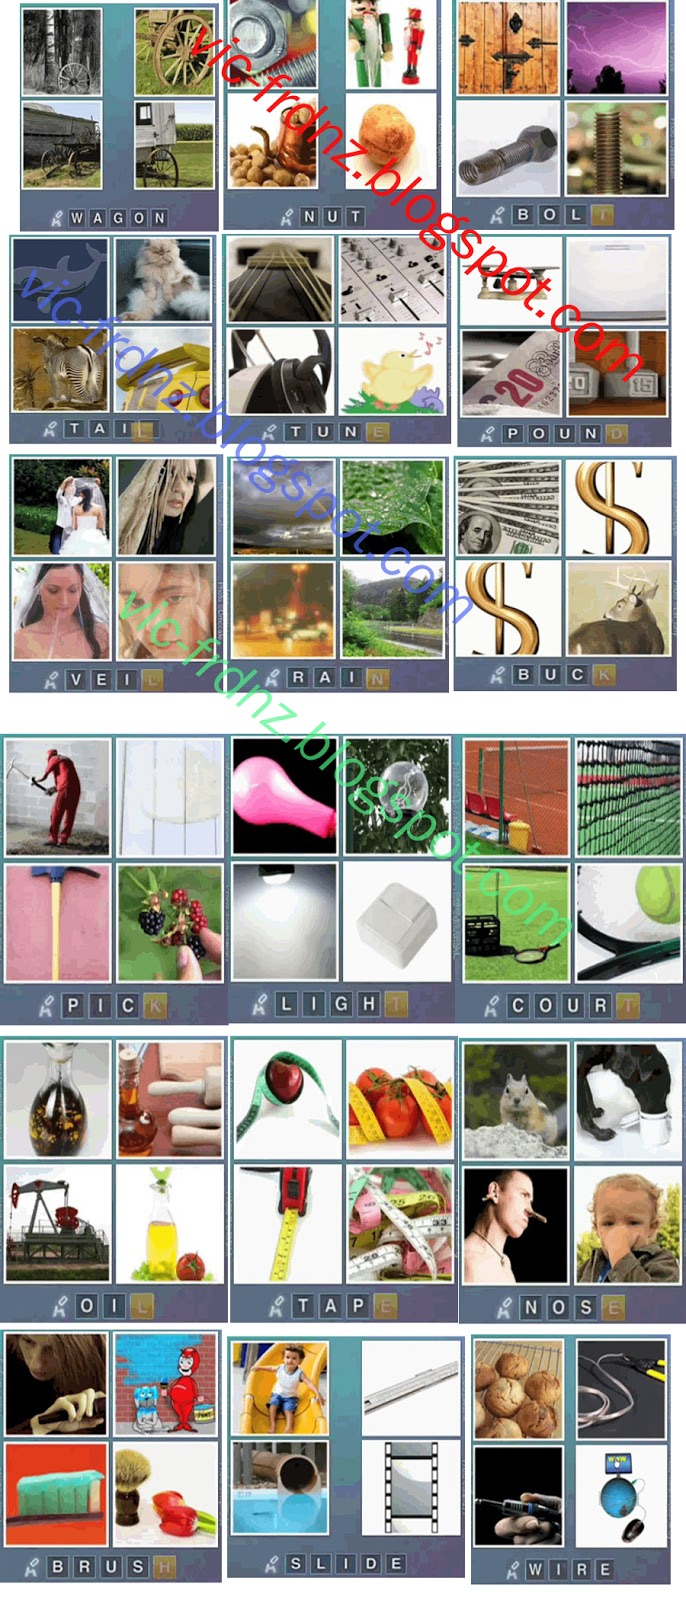 4 Letters Part 2 4 Pics 1 Word Answers